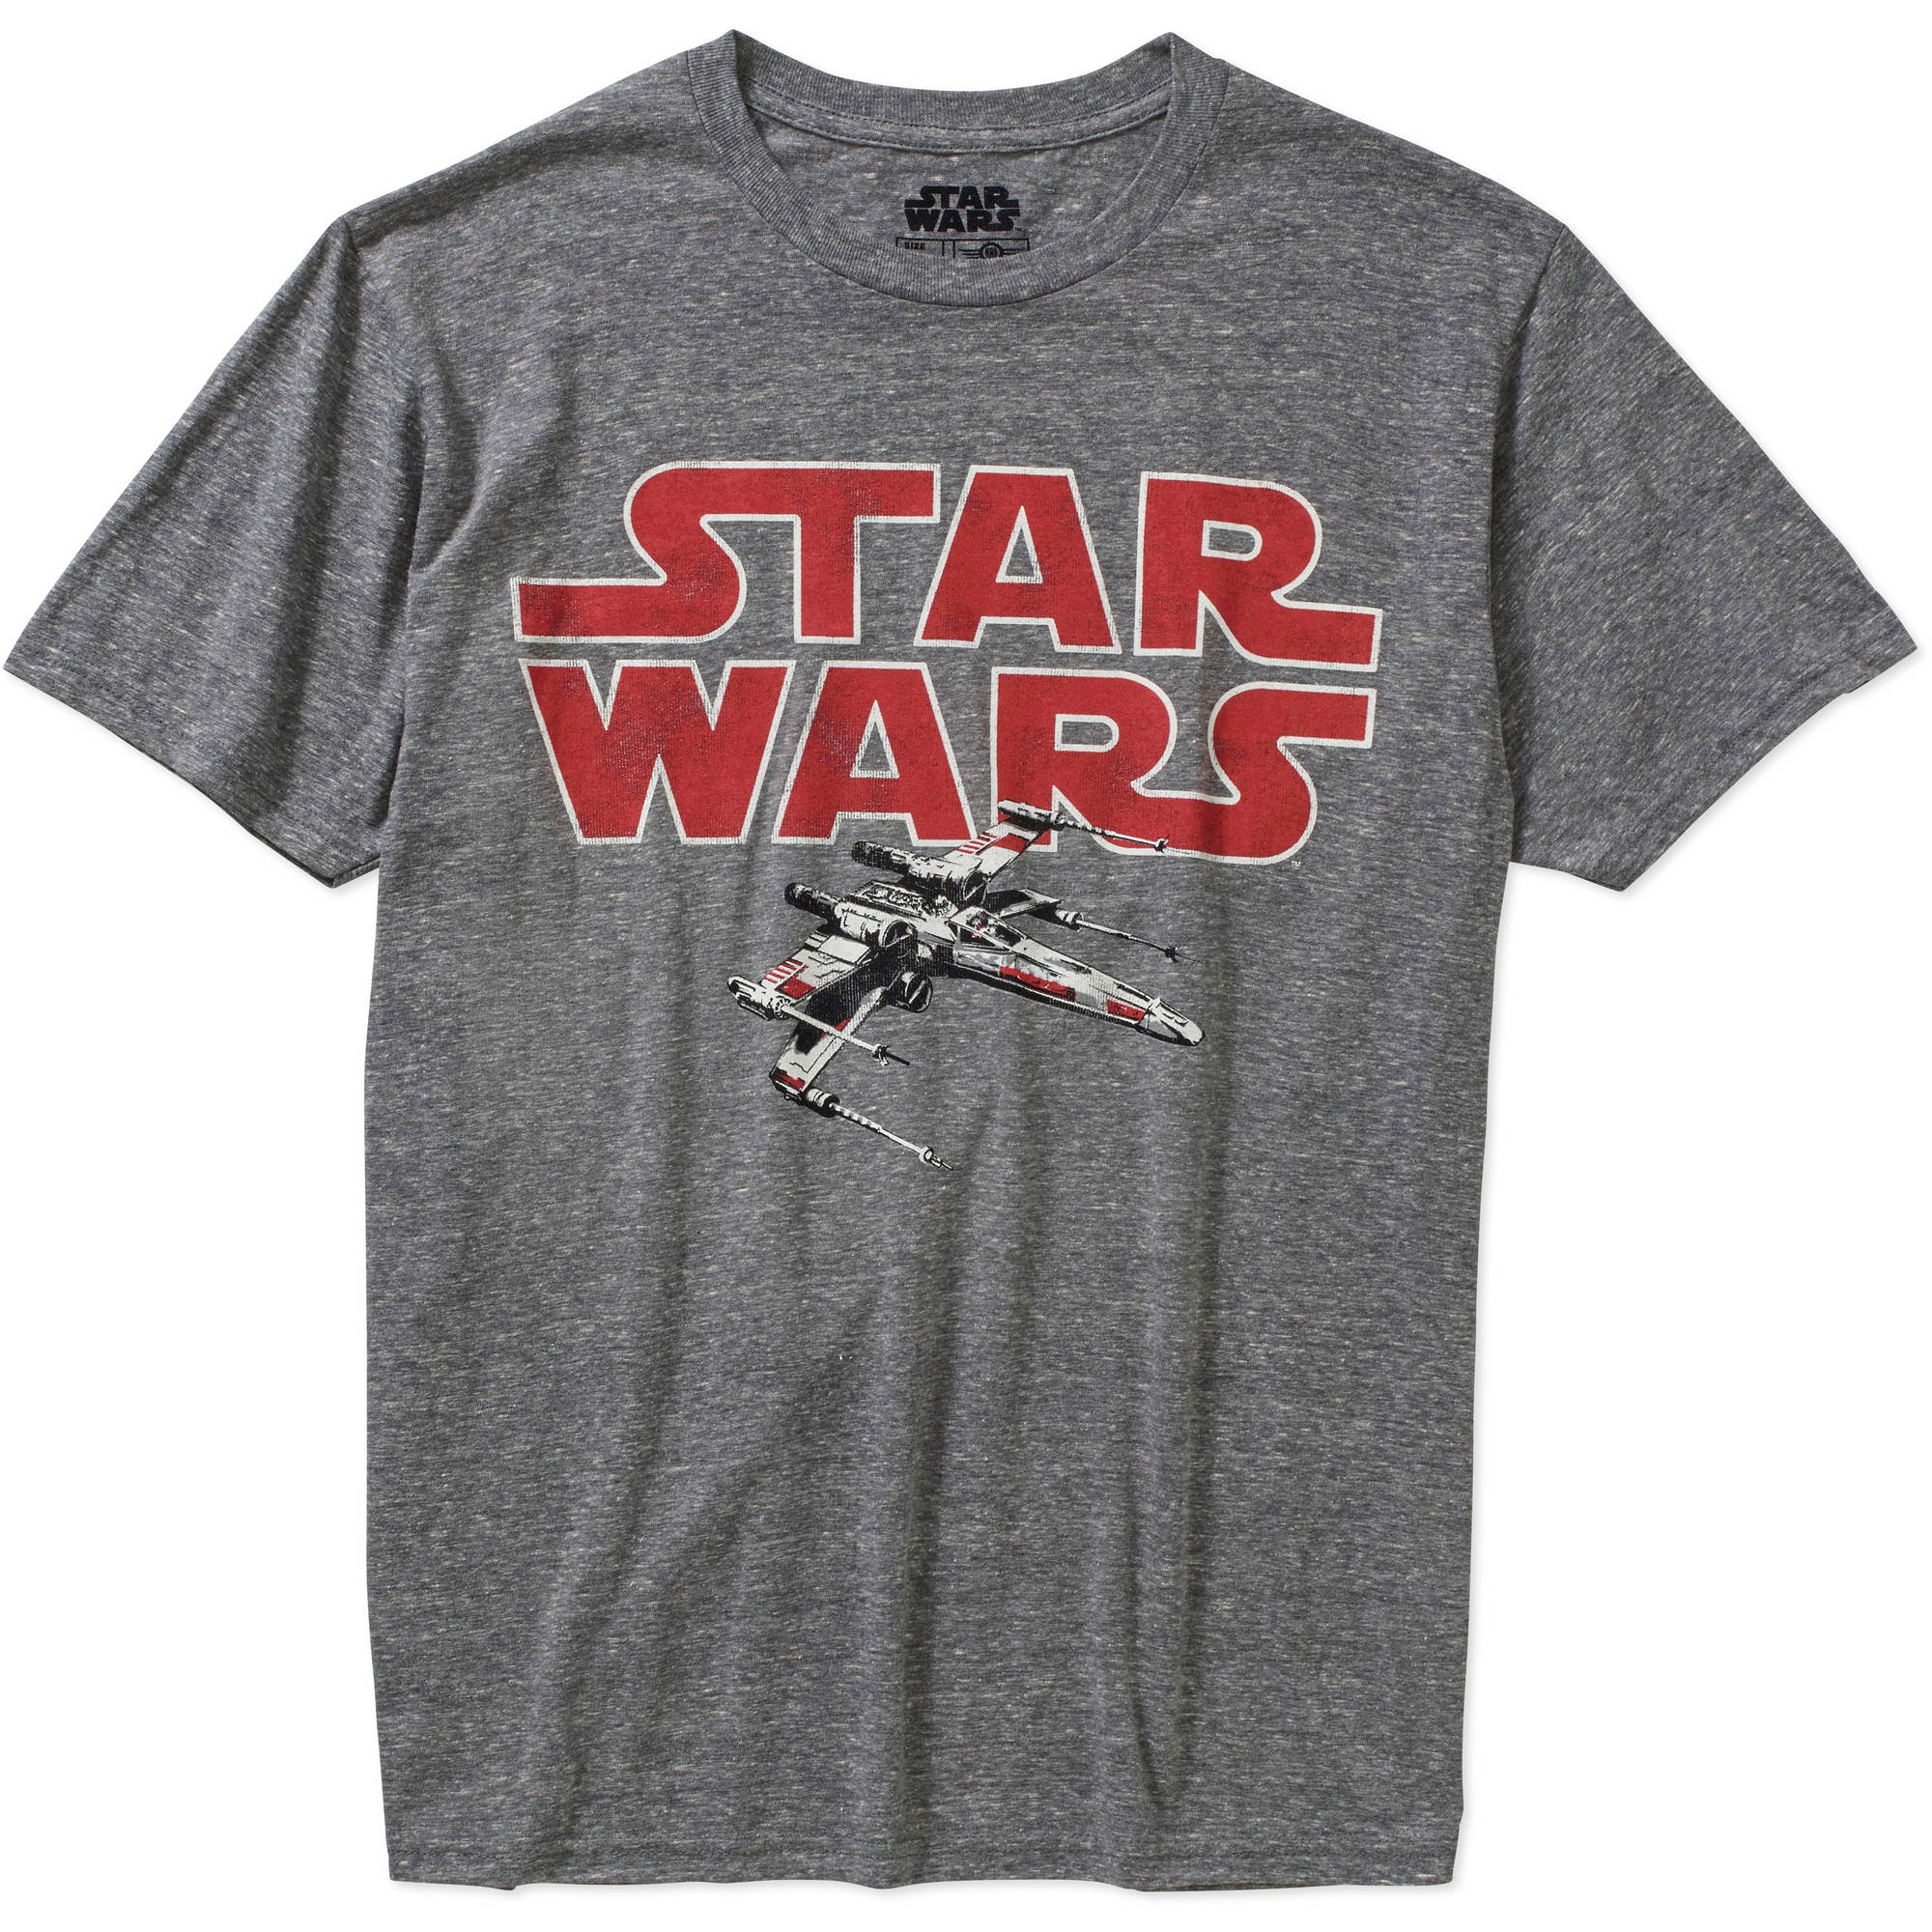 "STAR WARS ""CLEAN ESCAPE"" MENS GRAPHIC TEE"